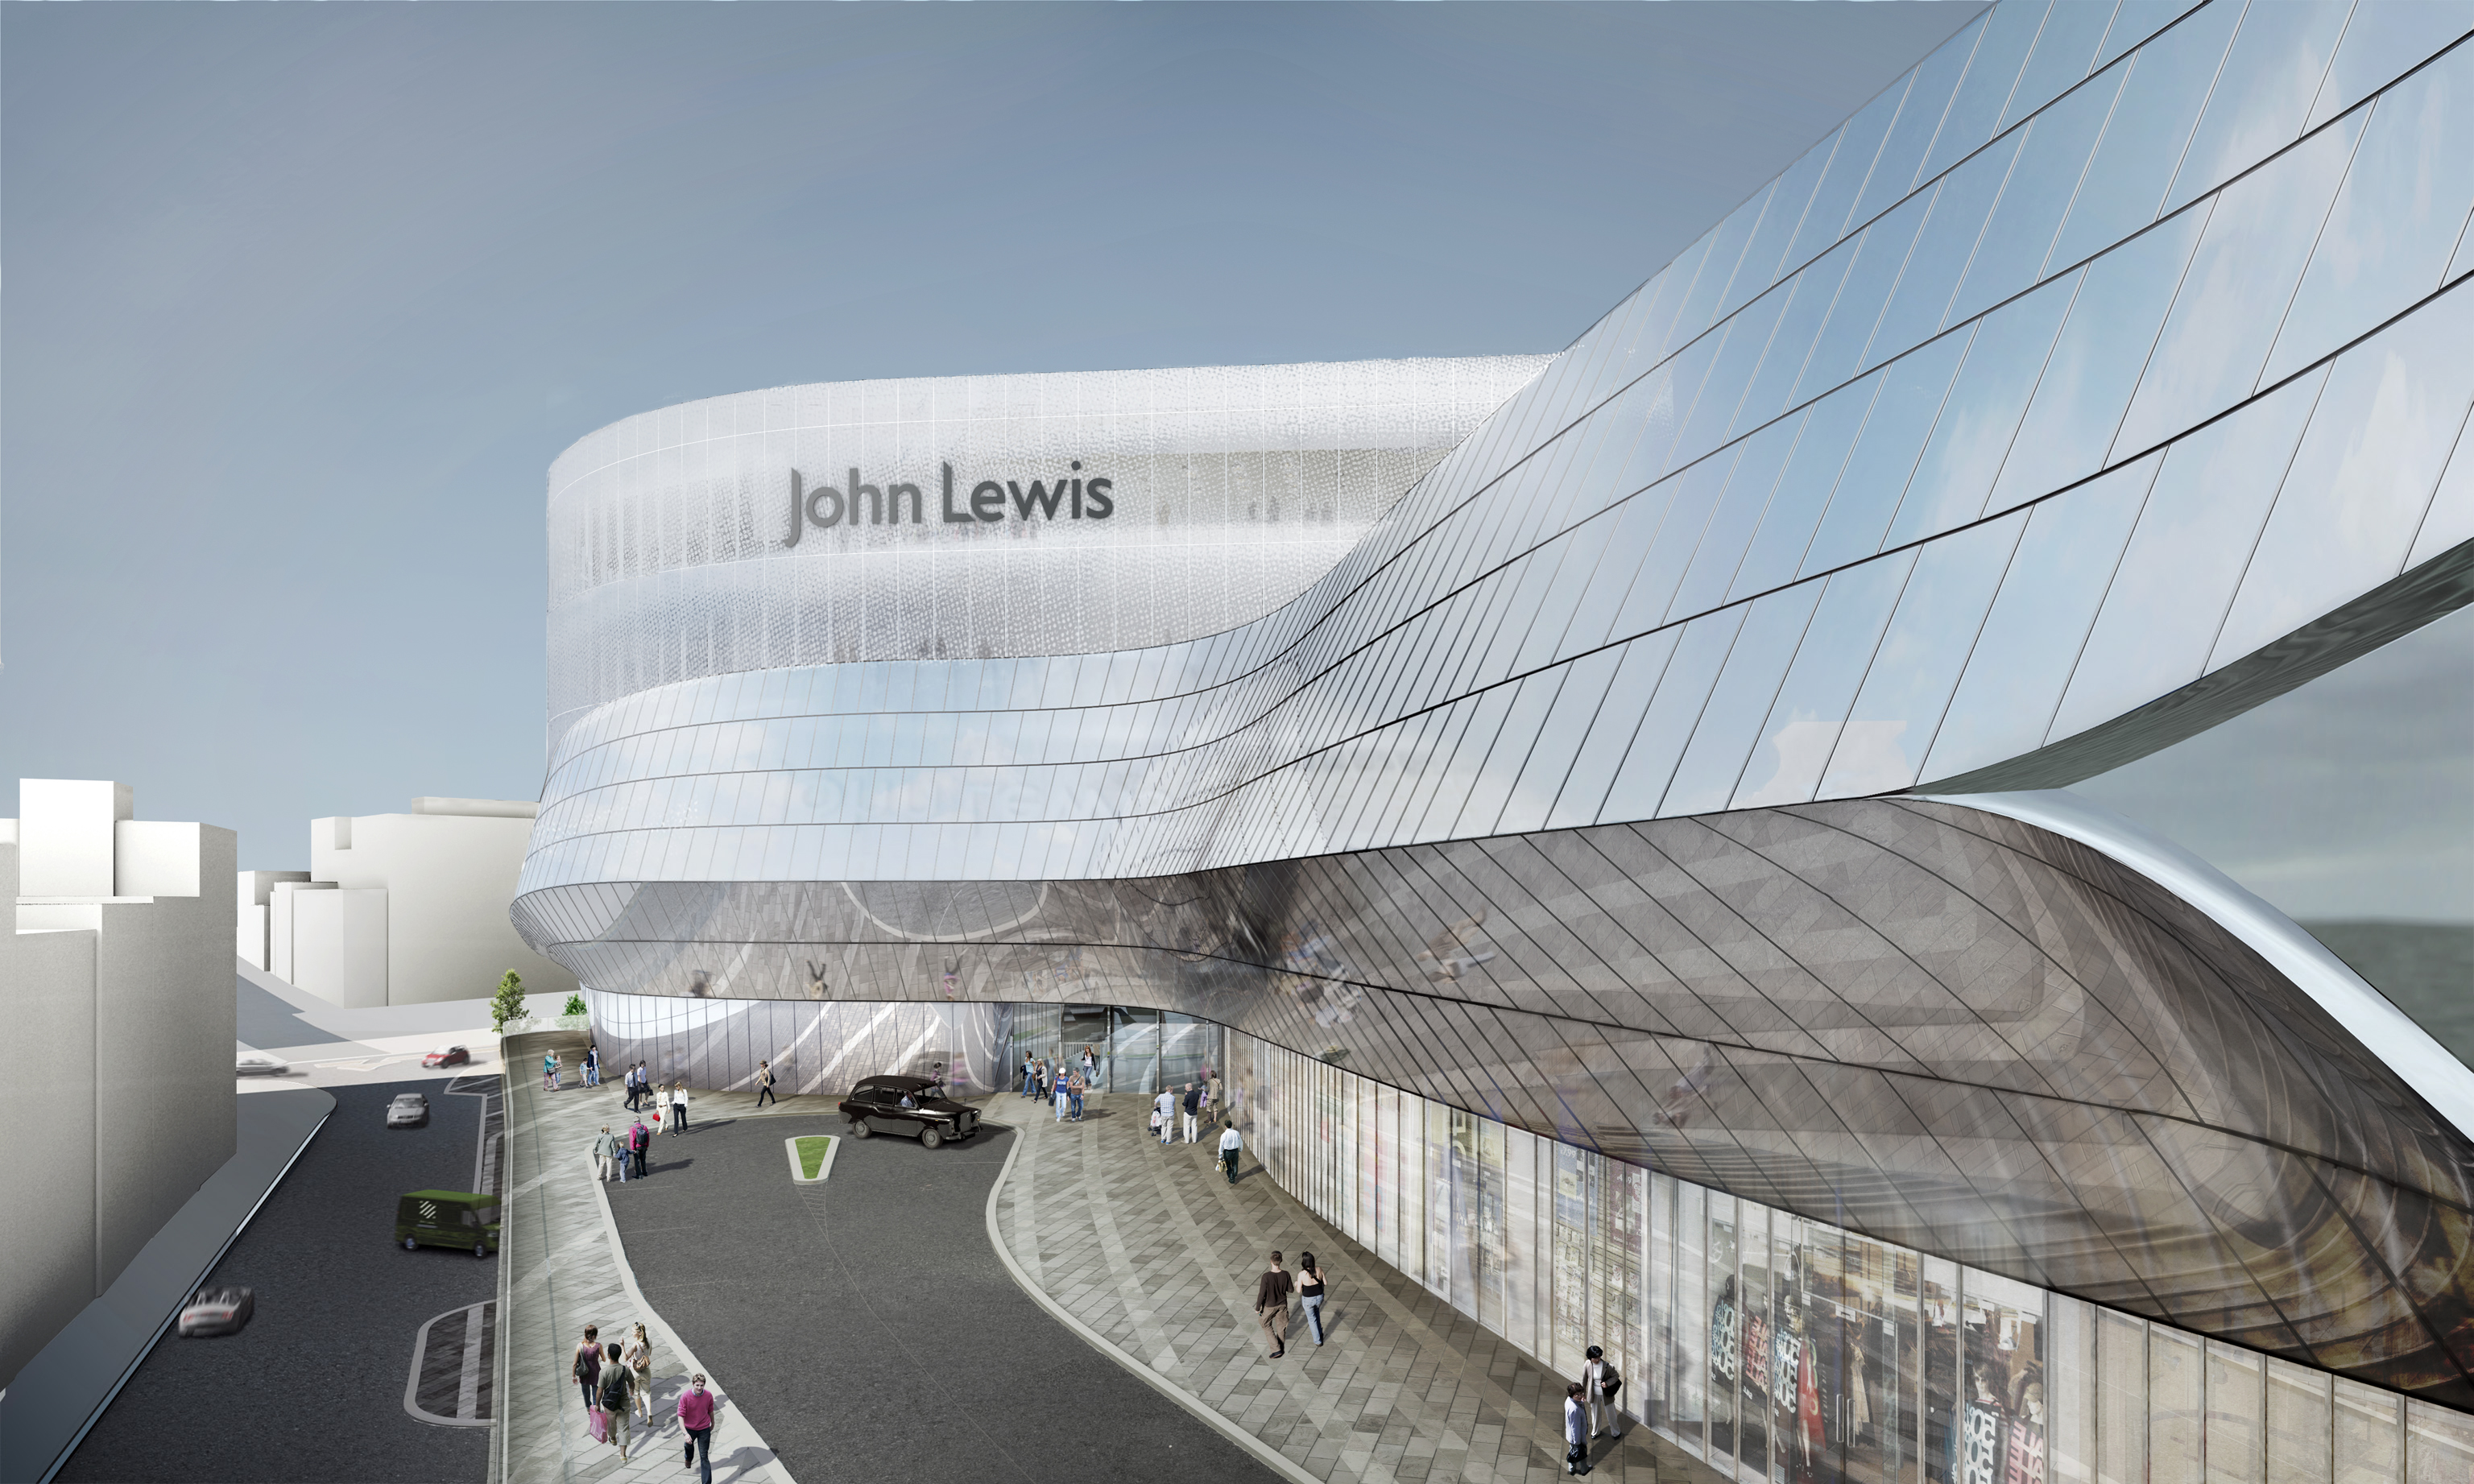 Digital case study: John Lewis' Secret To Digital Marketing Success